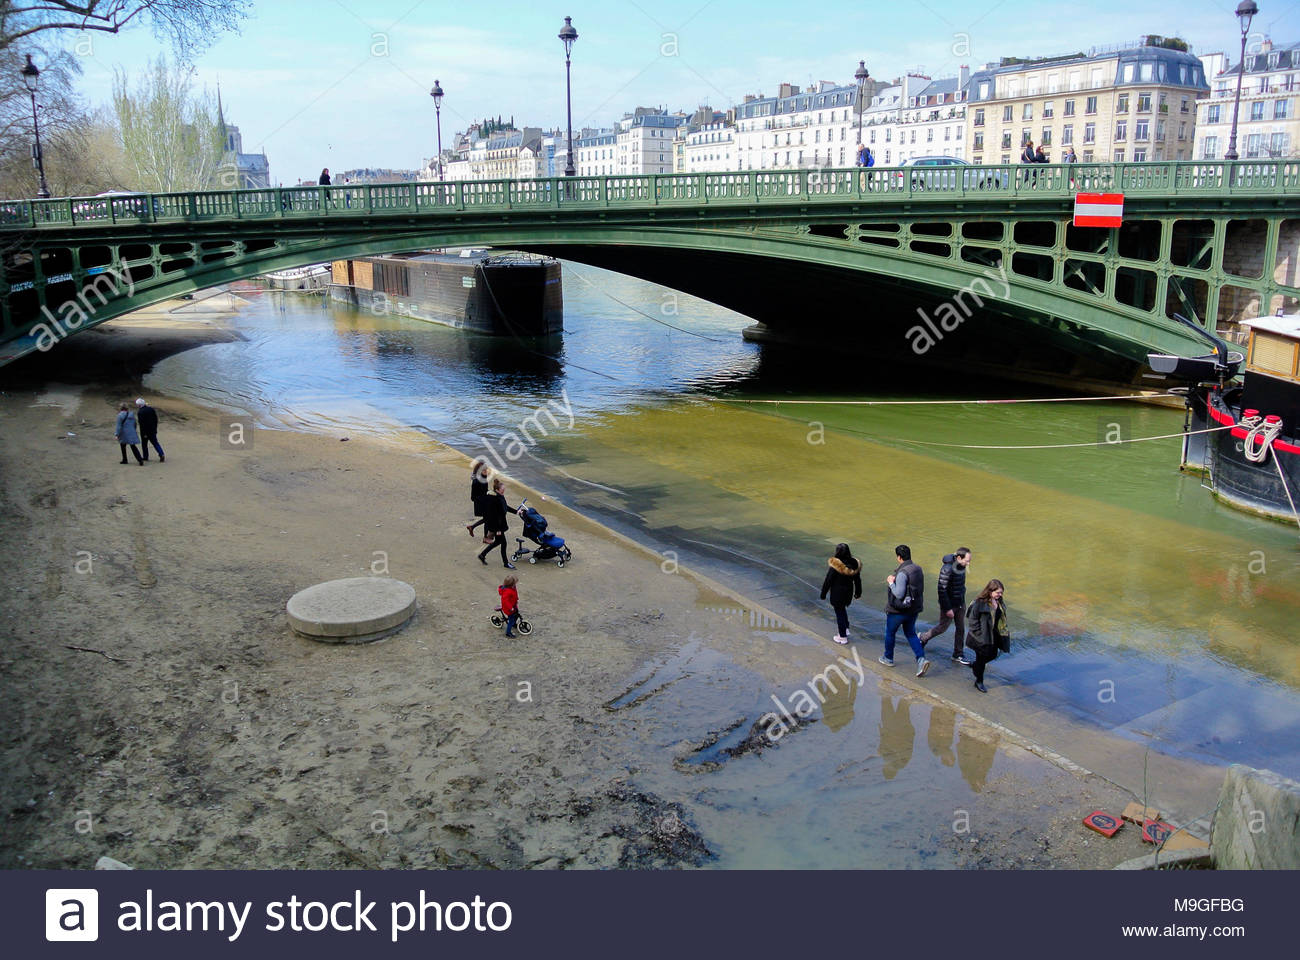 walkers seine river paris france - Stock Image